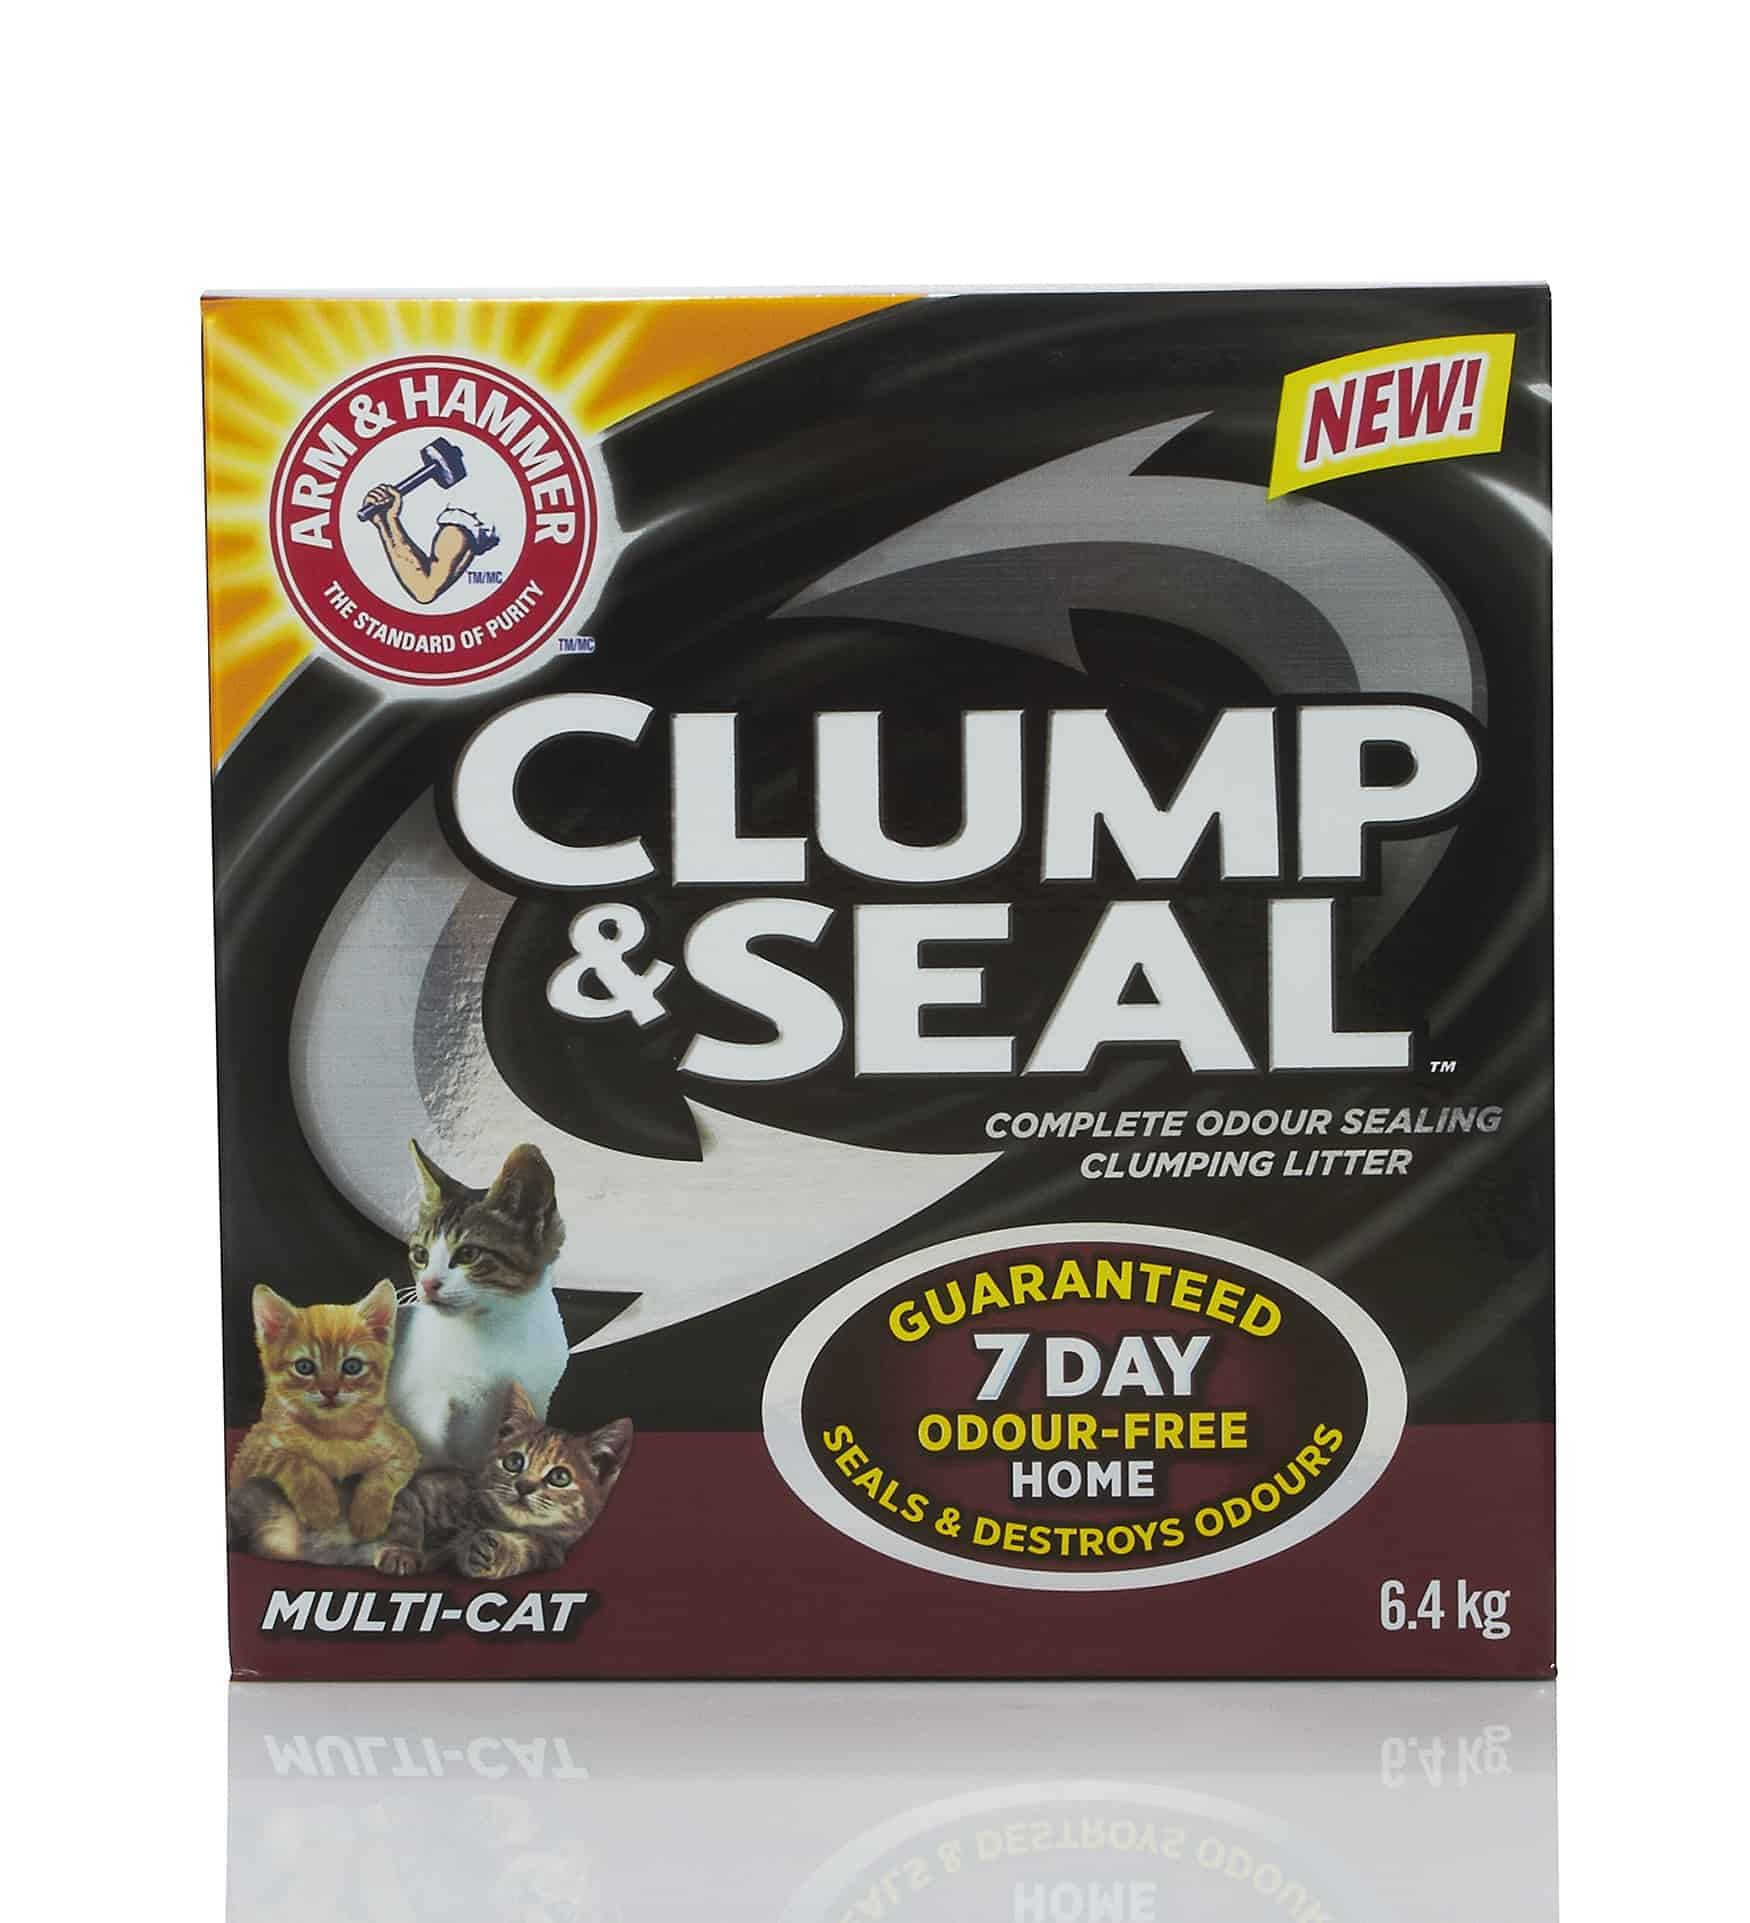 This revolutionary formula seals and destroys odours before they can leave the litter box.